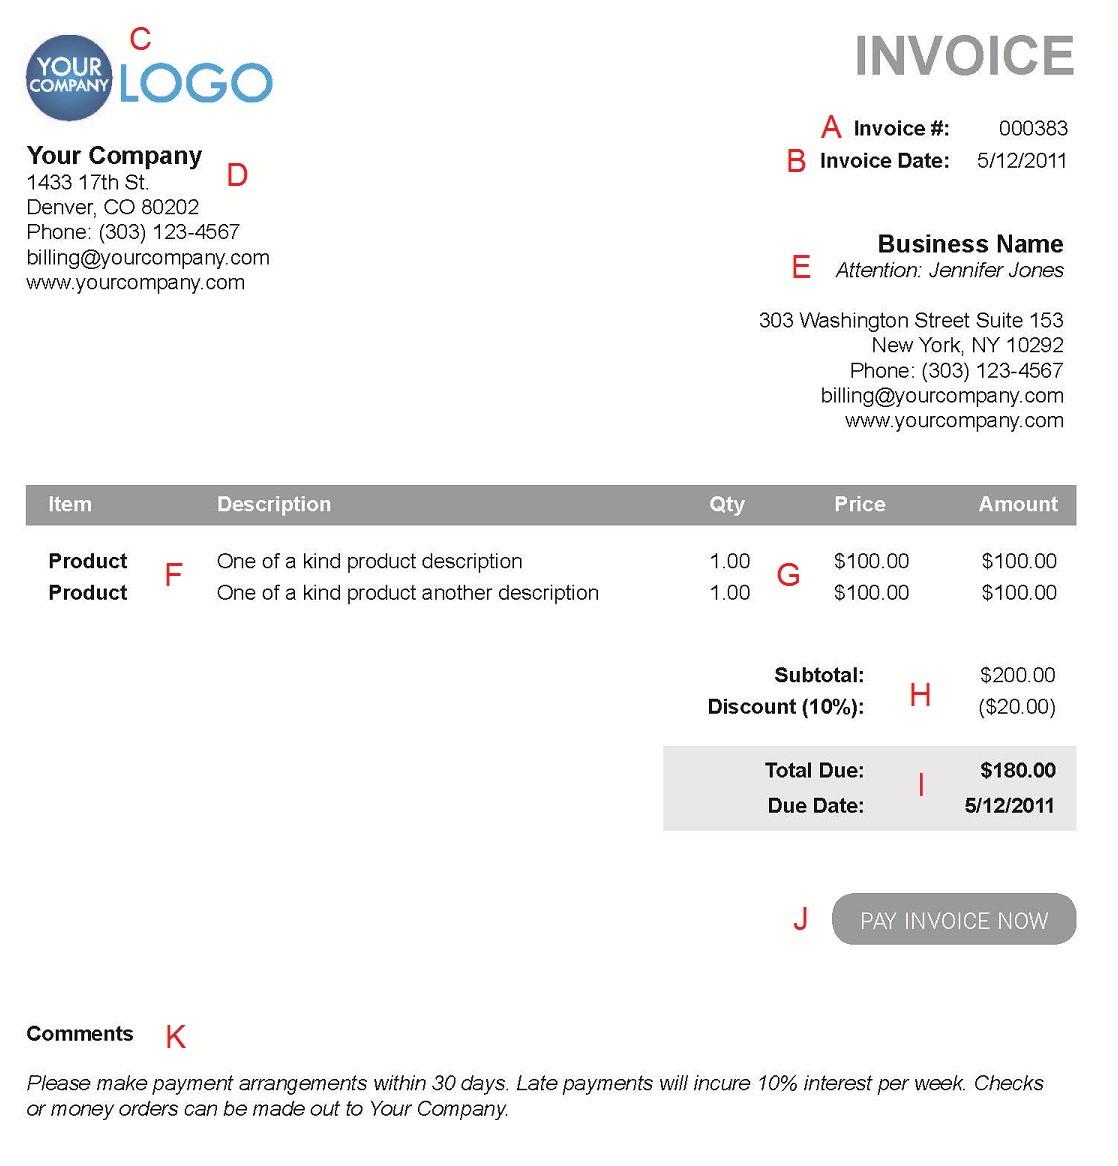 Ultrablogus  Terrific The  Different Sections Of An Electronic Payment Invoice With Entrancing A  With Enchanting Generic Receipt Form Also Best Receipt Scanners In Addition Rent Receipt Format India And Free Receipts Template As Well As Landlord Receipt Additionally Cash Receipt Books From Paysimplecom With Ultrablogus  Entrancing The  Different Sections Of An Electronic Payment Invoice With Enchanting A  And Terrific Generic Receipt Form Also Best Receipt Scanners In Addition Rent Receipt Format India From Paysimplecom